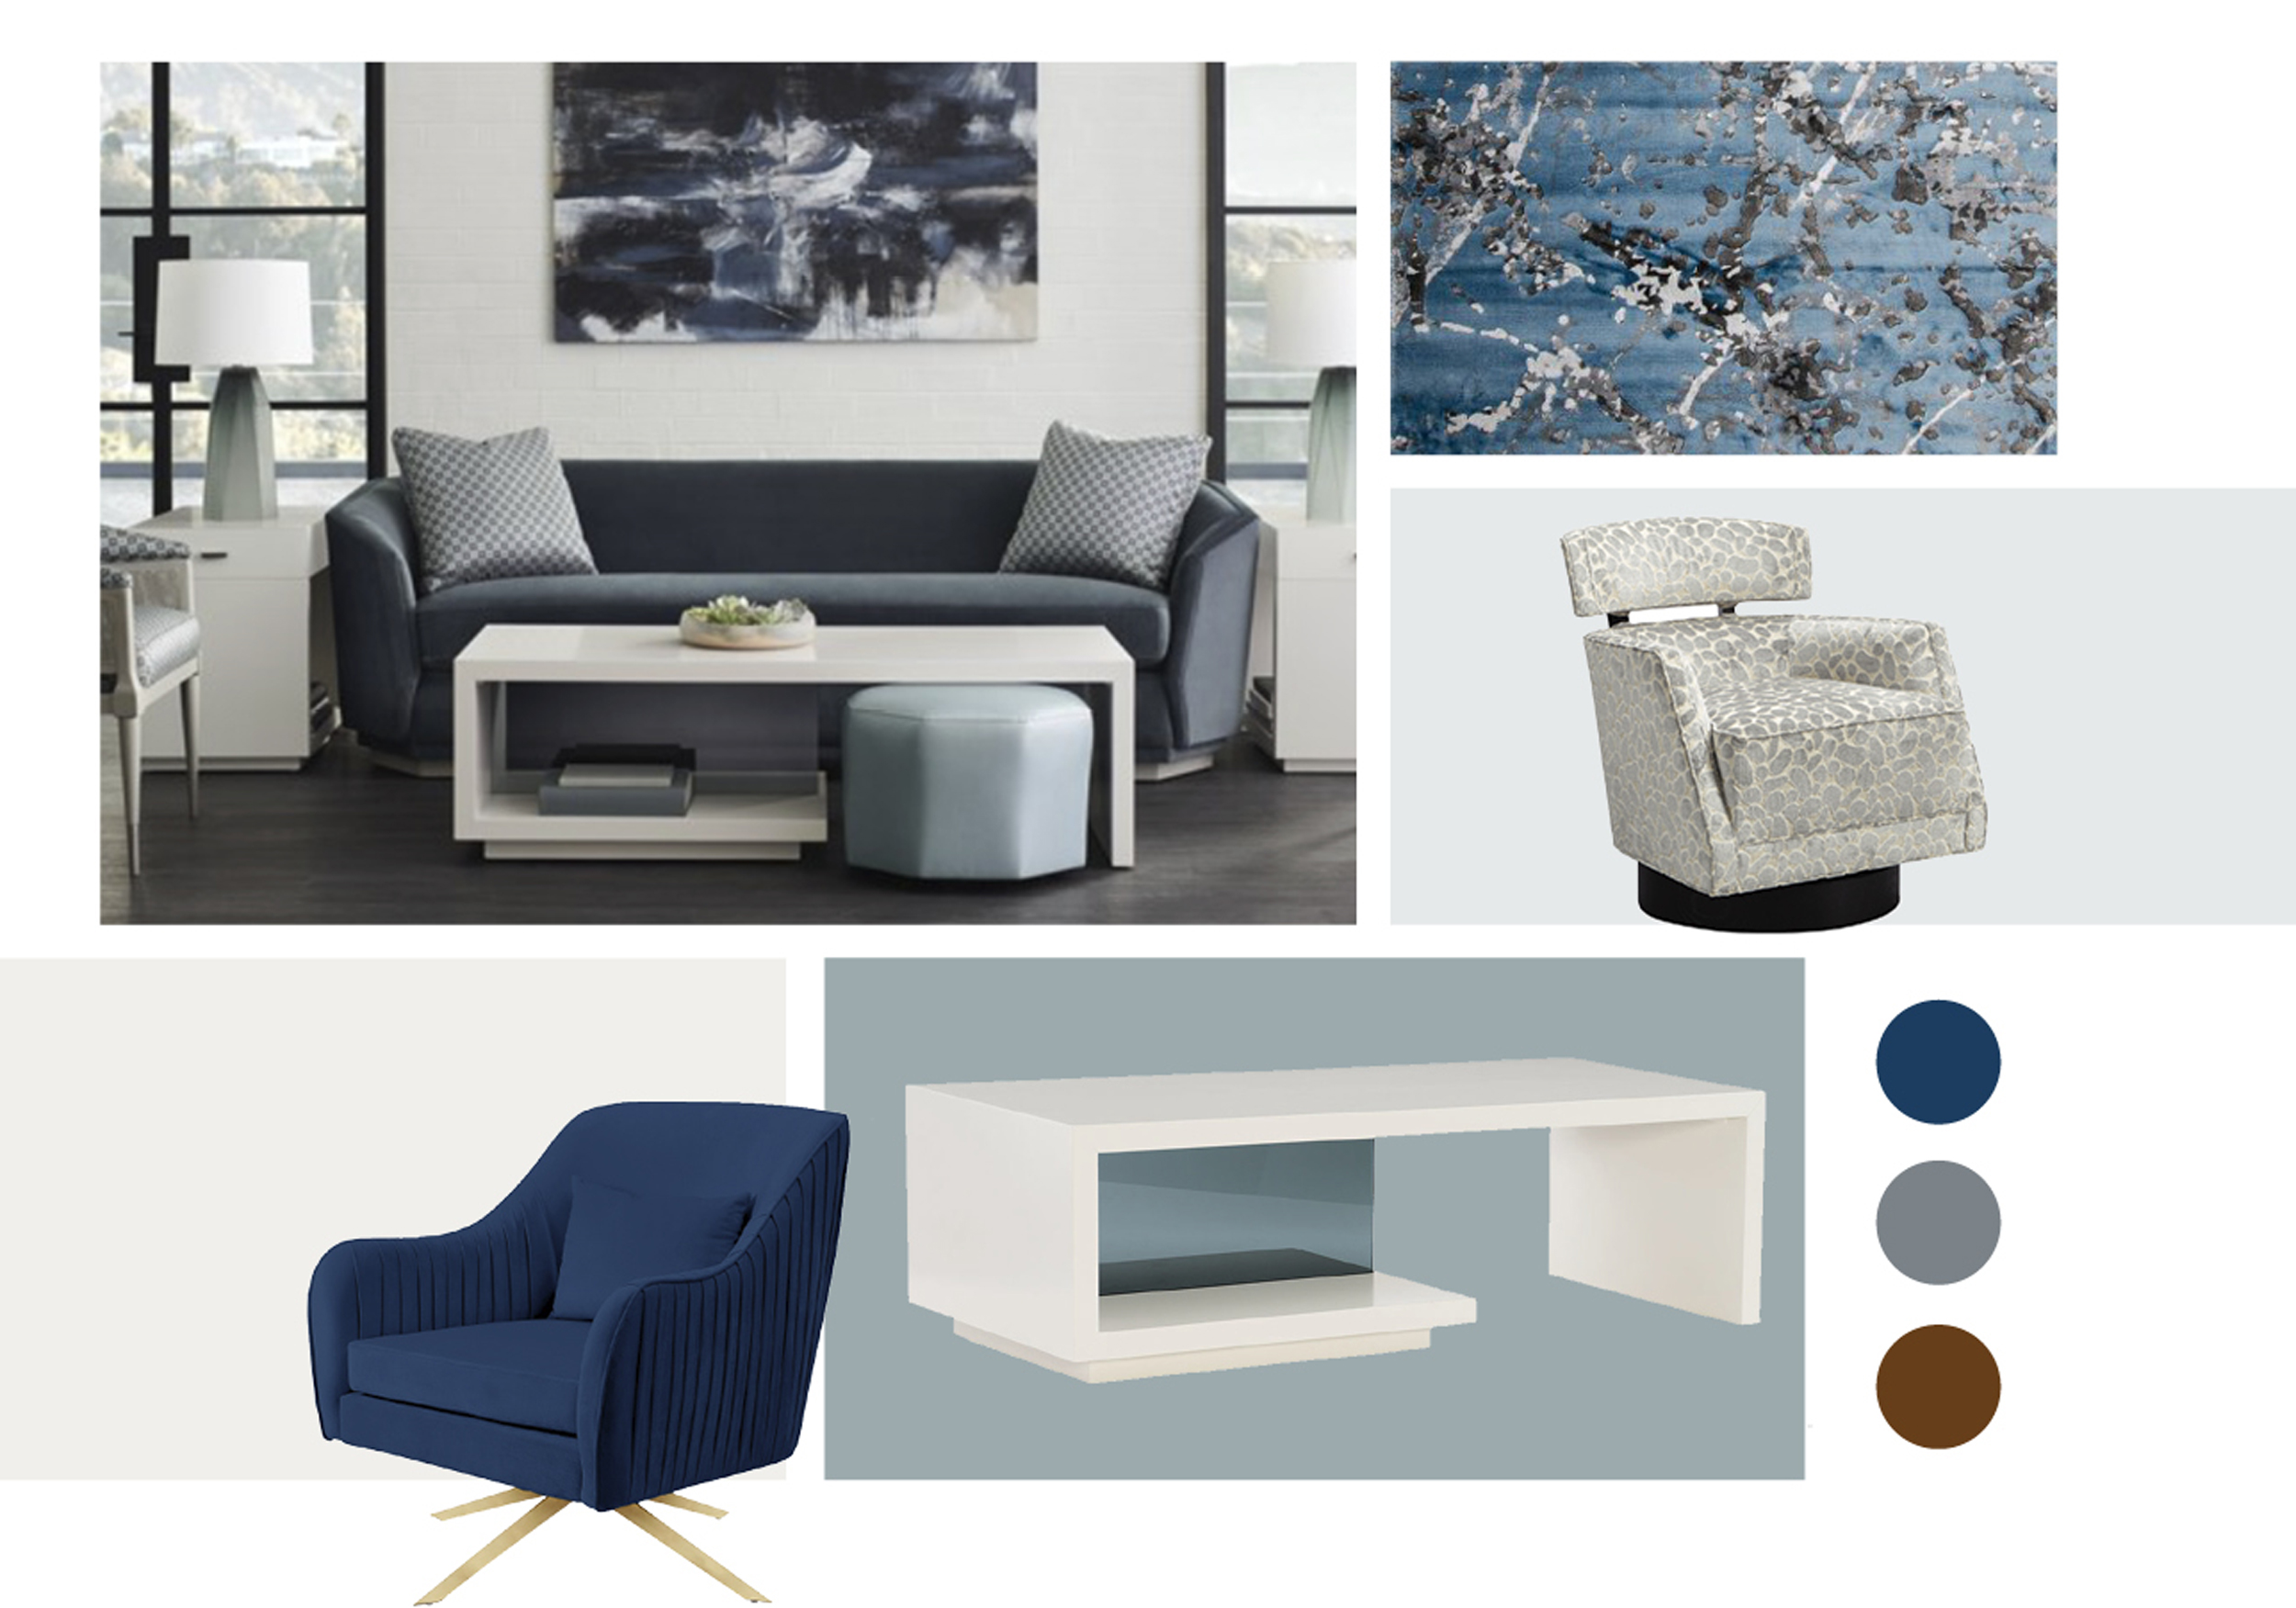 A collection of design items including rug, couch, coffee table, color palettes and accent items